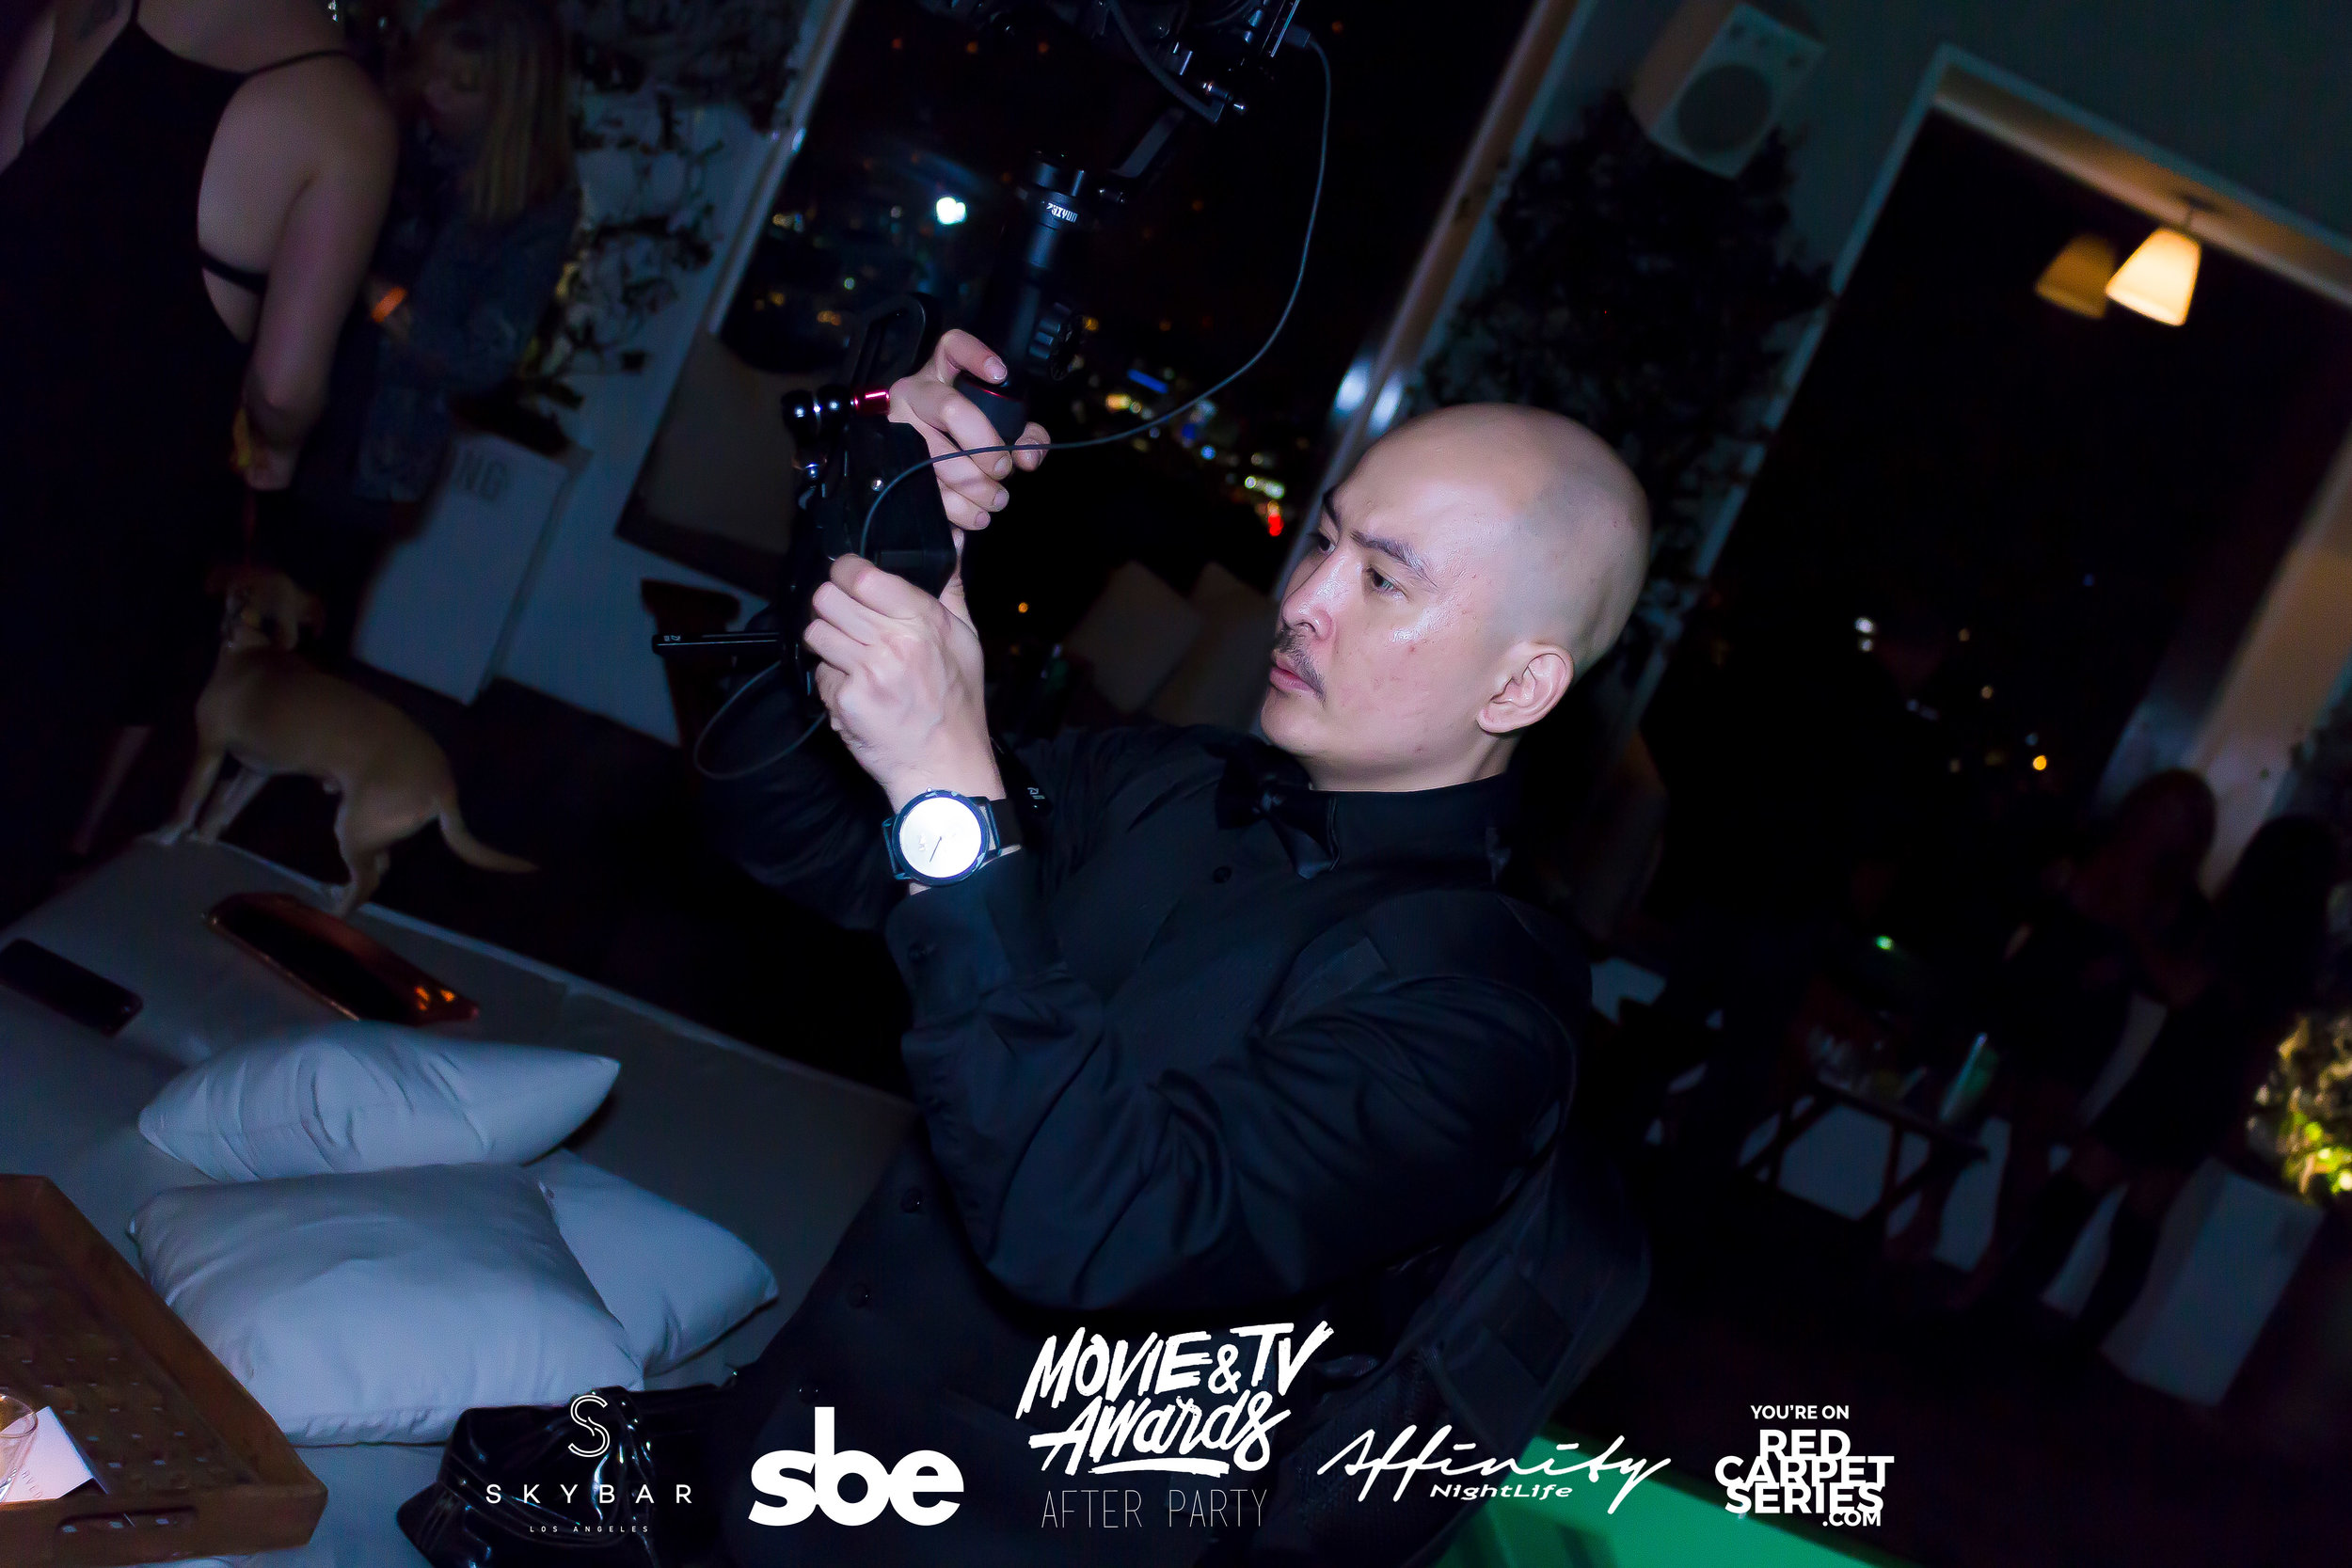 Affinity Nightlife MTV Movie & TV Awards After Party - Skybar at Mondrian - 06-15-19 - Vol. 2_138.jpg